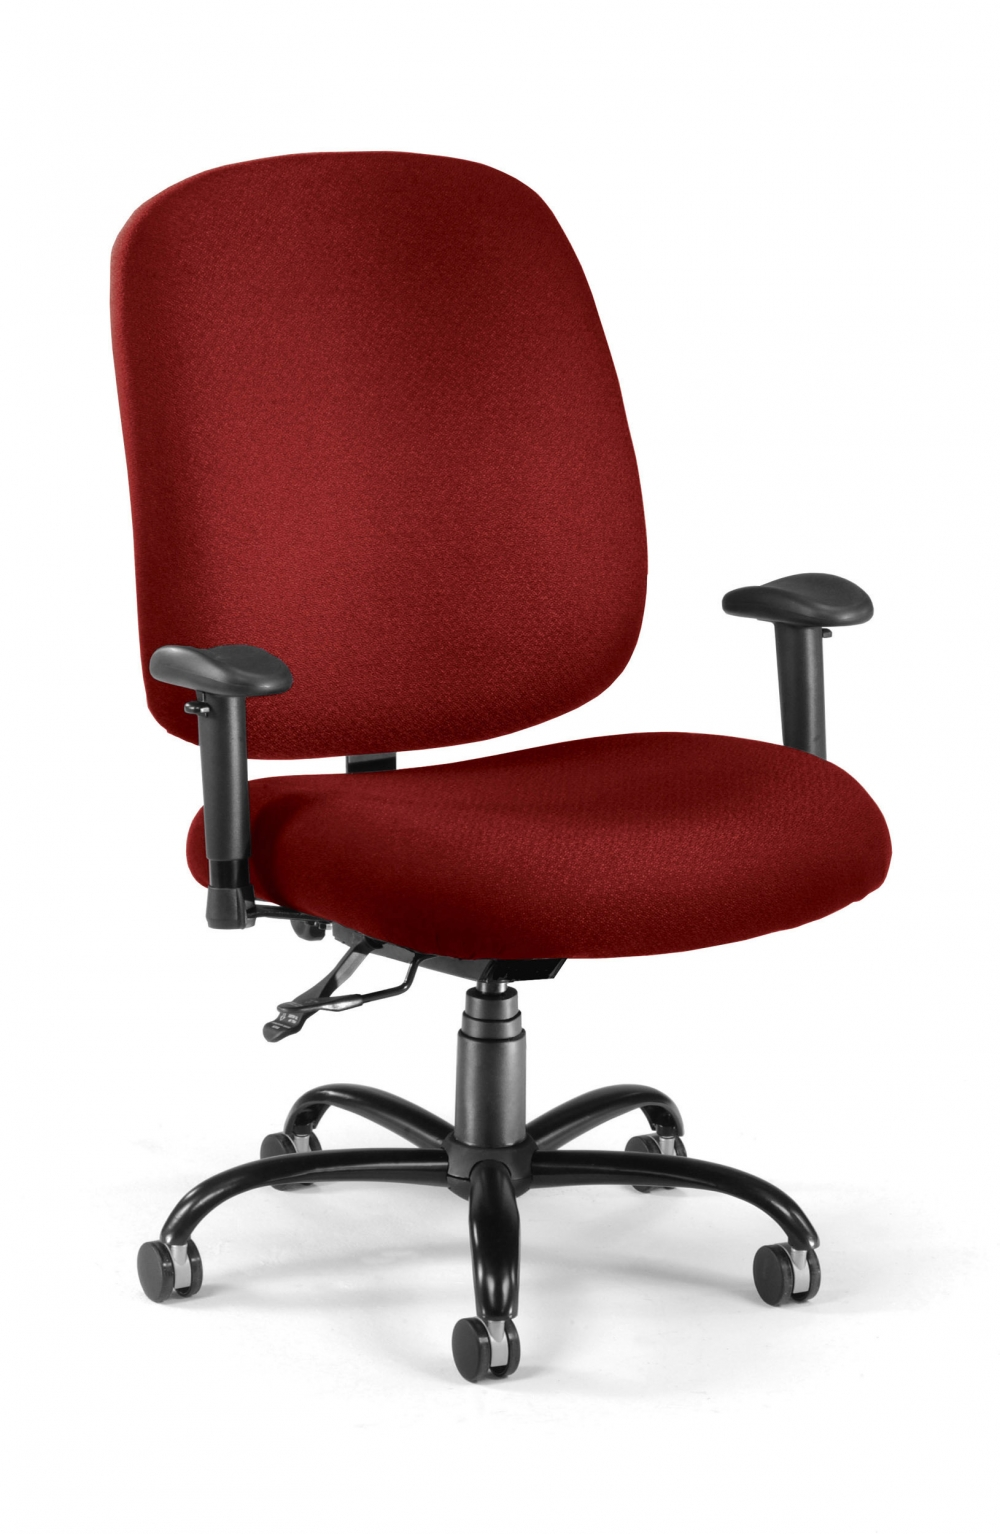 Red Desk Chair Pollux Heavy Duty Desk Chair